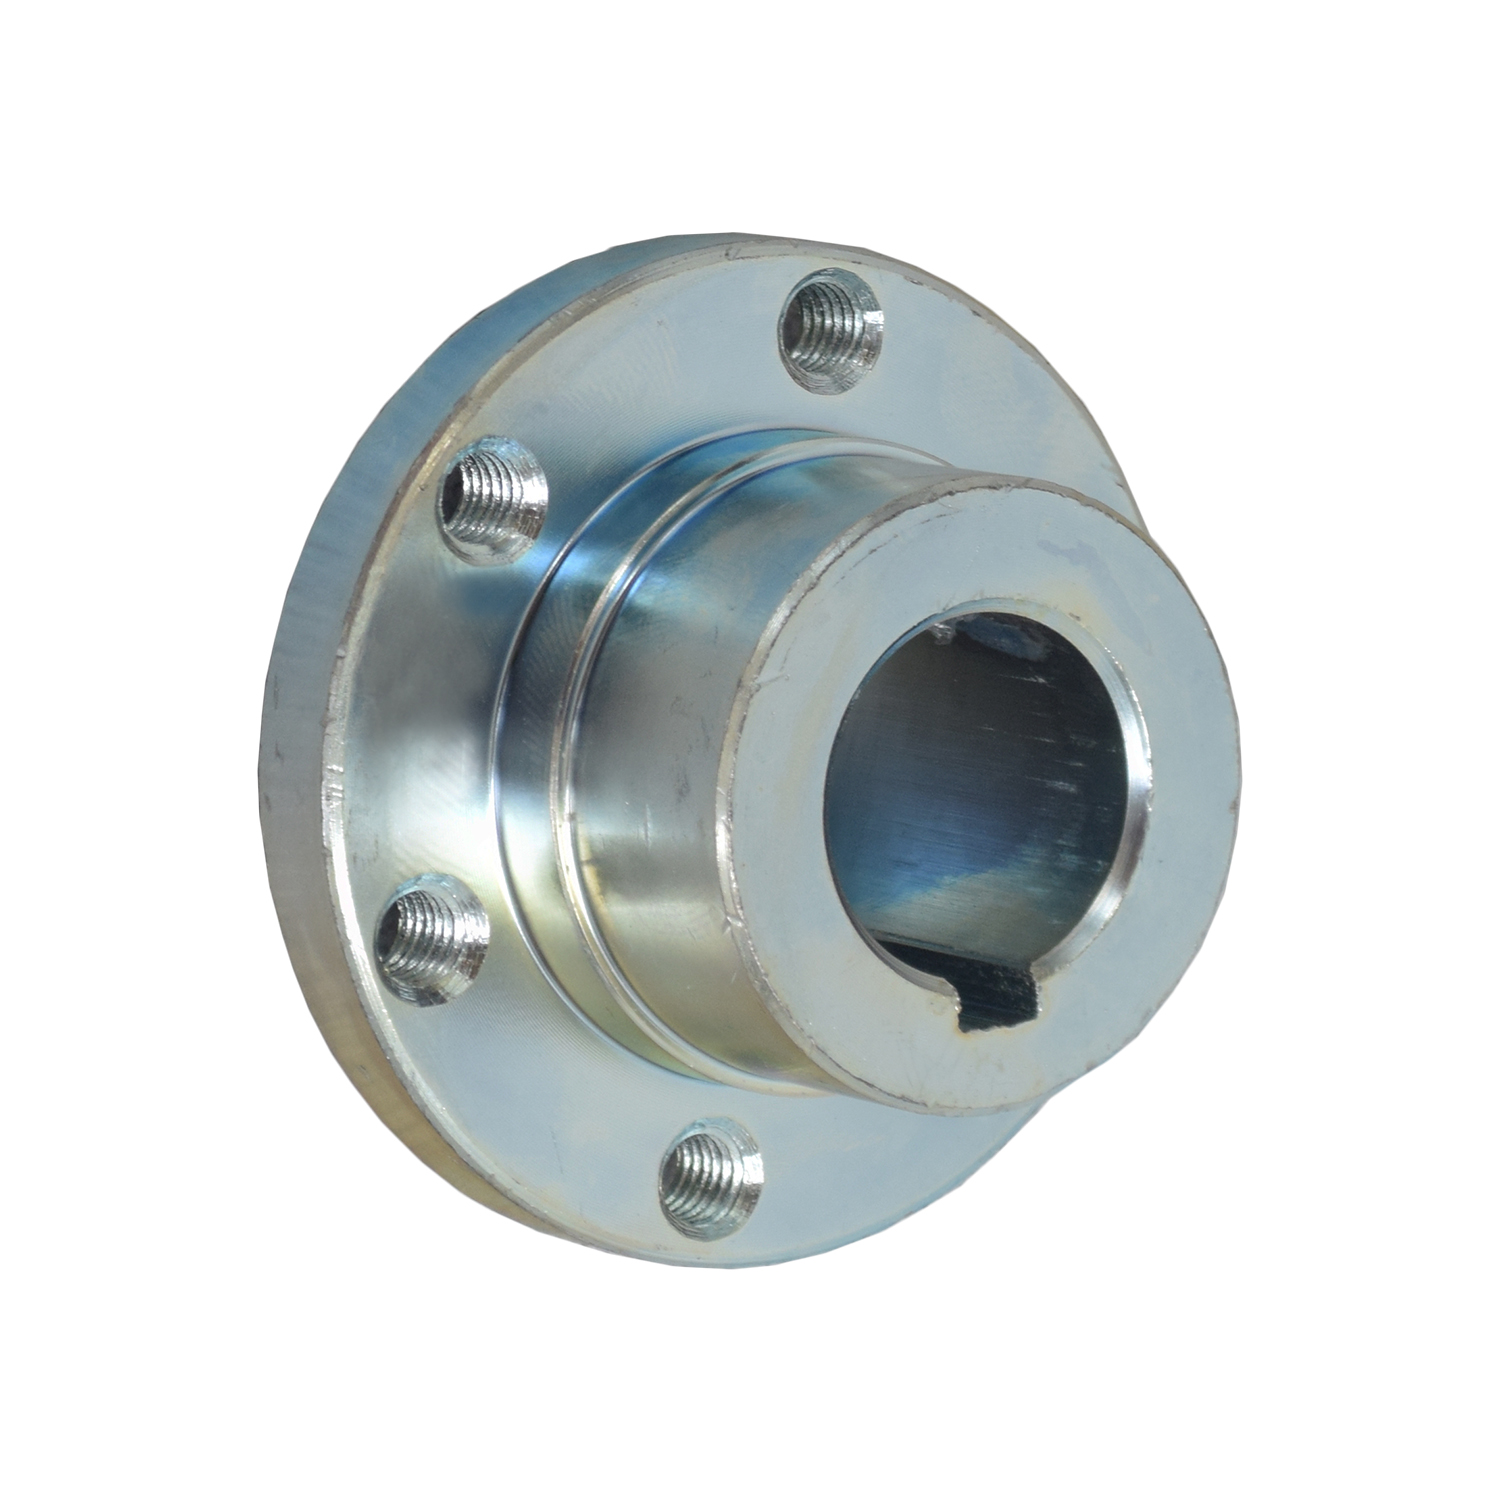 Parts AlveyTech 4 x 4 Go-Kart Live Axle Hub with 1 to 3/4 Step ...